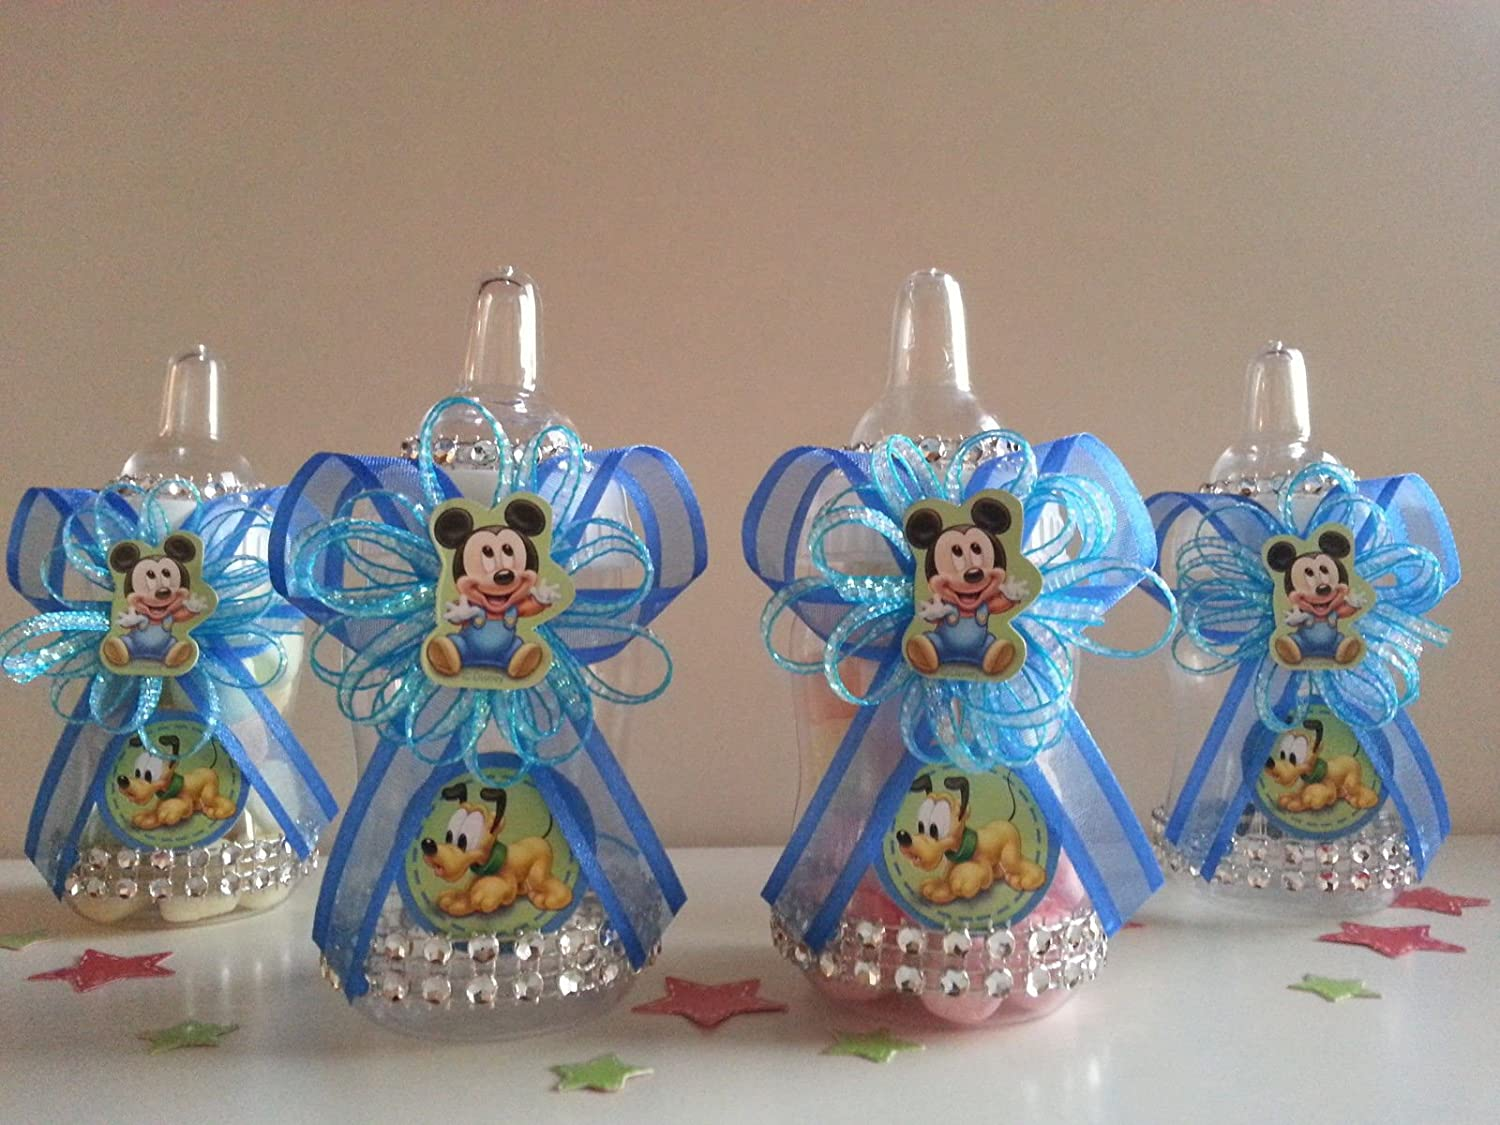 12 Baby Mickey Mouse Fillable Bottles Baby Shower Favors Prizes Boy Decorations Product789